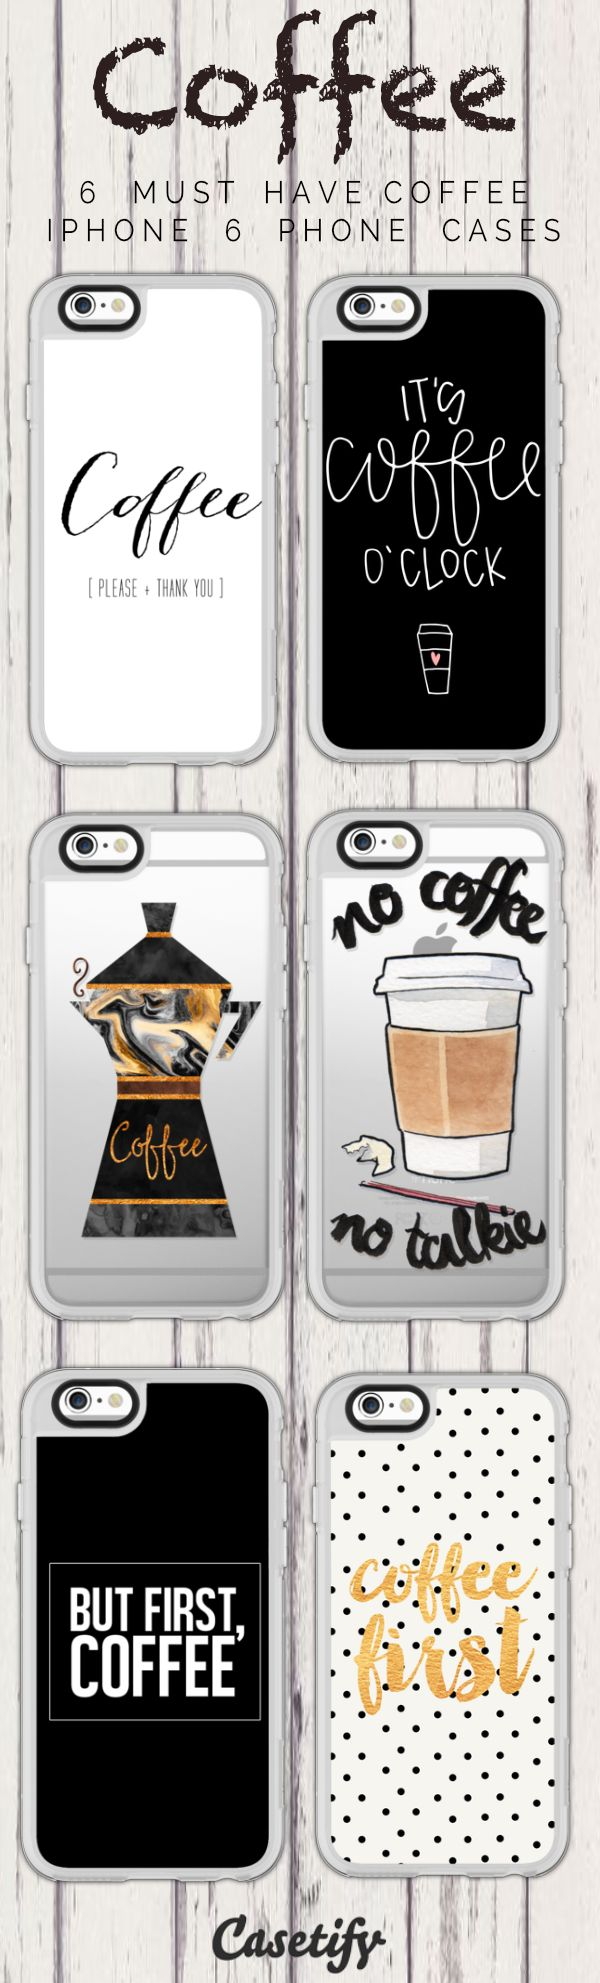 Top 6 Coffee iPhone 6 protective phone case designs | Click through to see more iPhone phone case designs >>> https://www.casetify.com/artworks/rwHrO7wUPq #coffee | @casetify